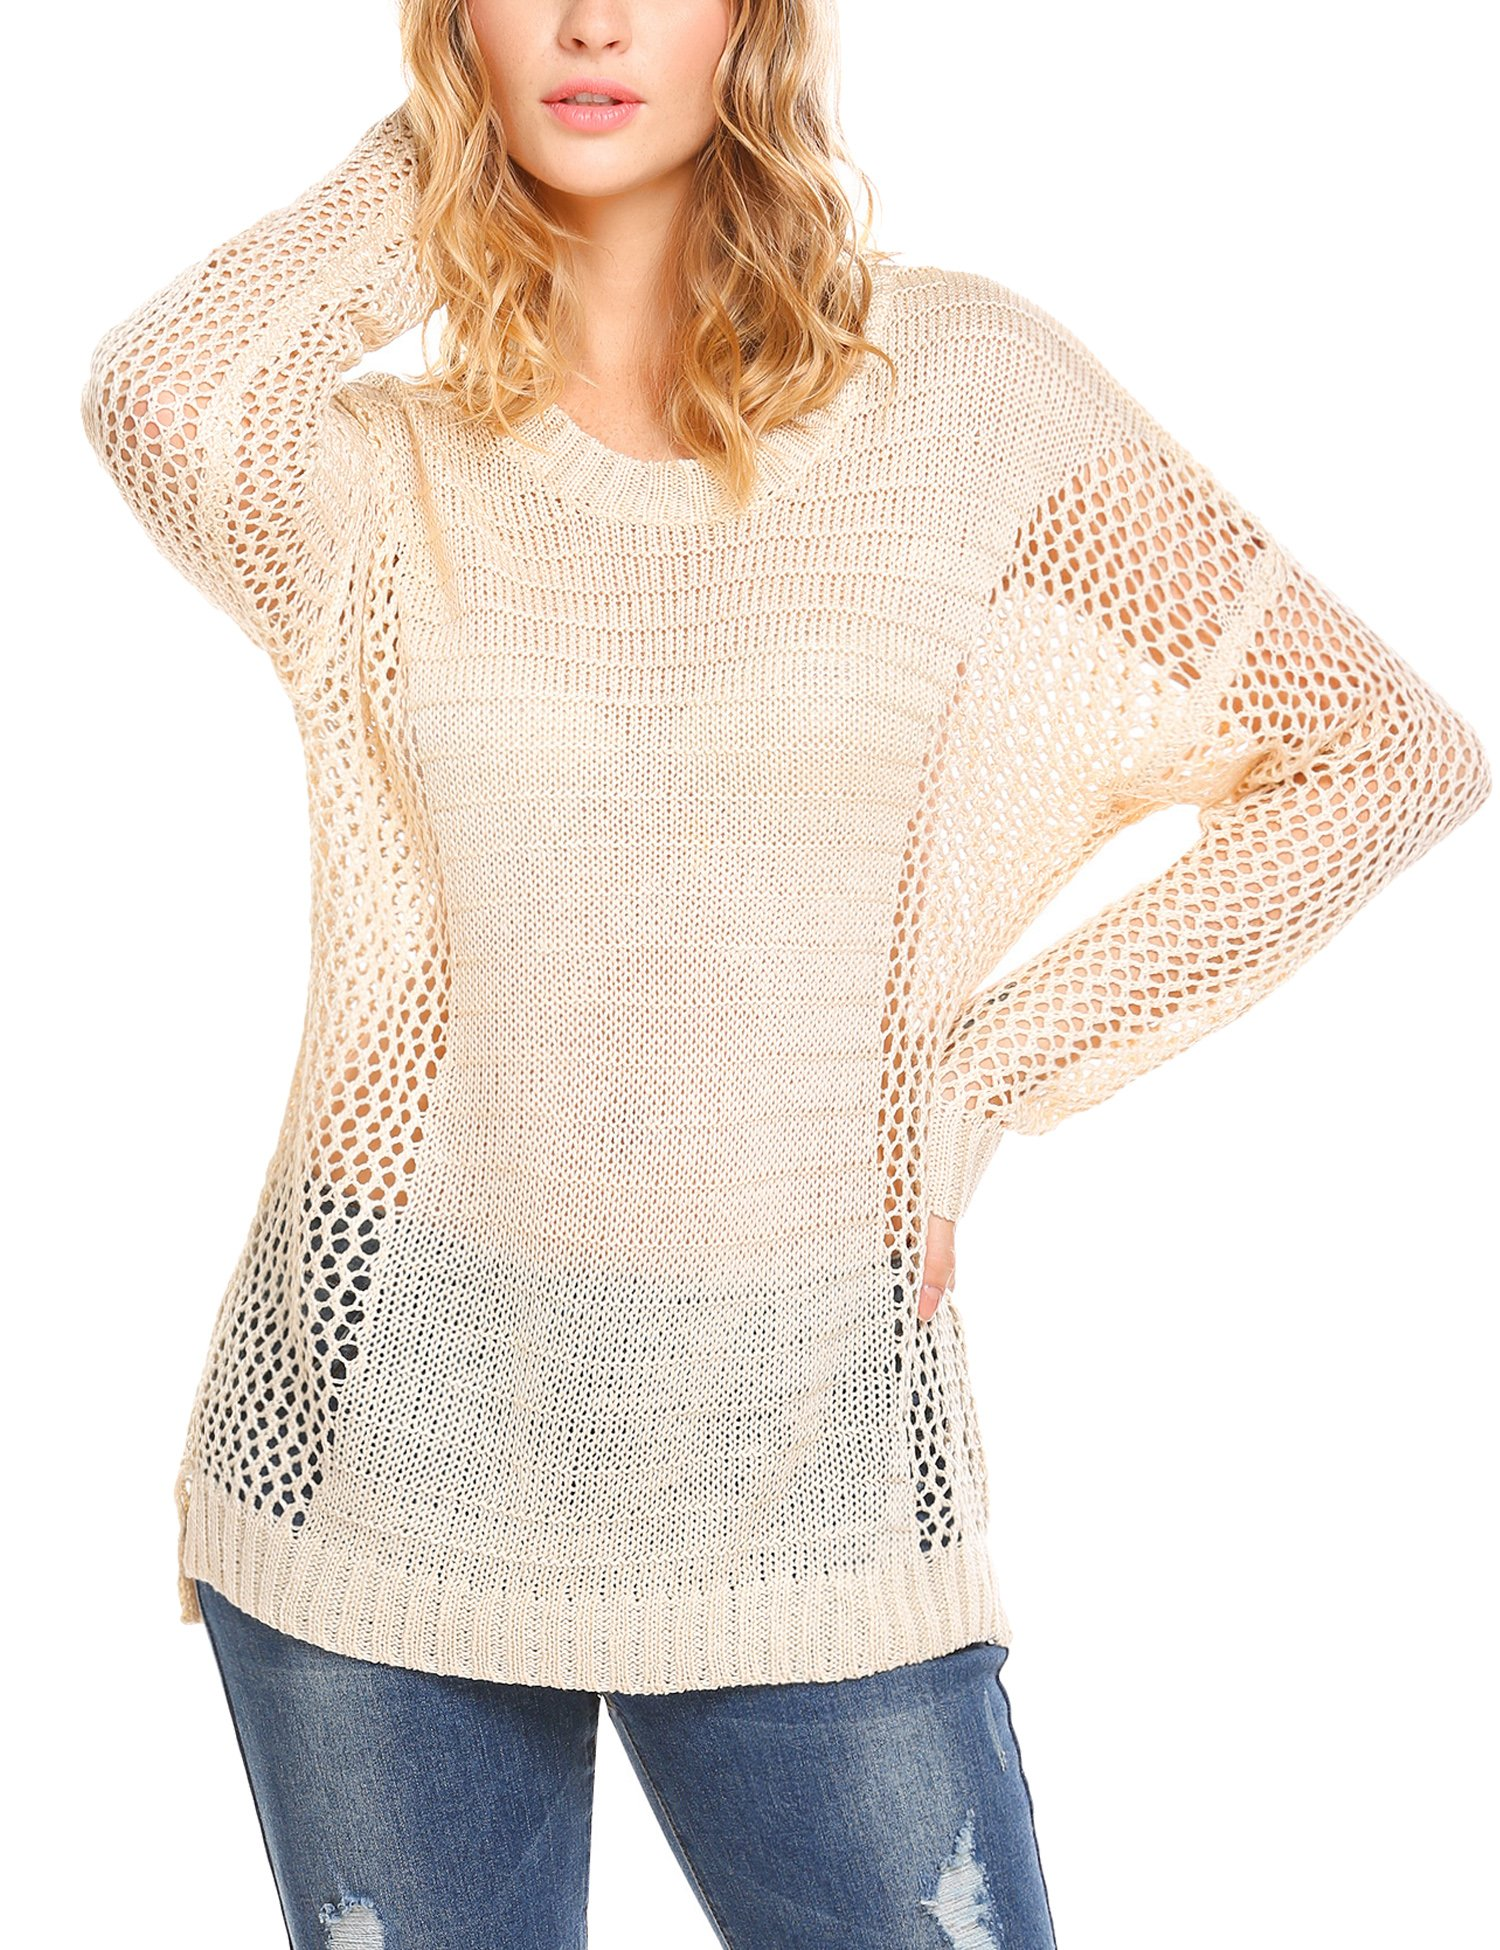 unibelle Women Casual Loose Hollow Out Knit Jumper Sweater Pullover Tops